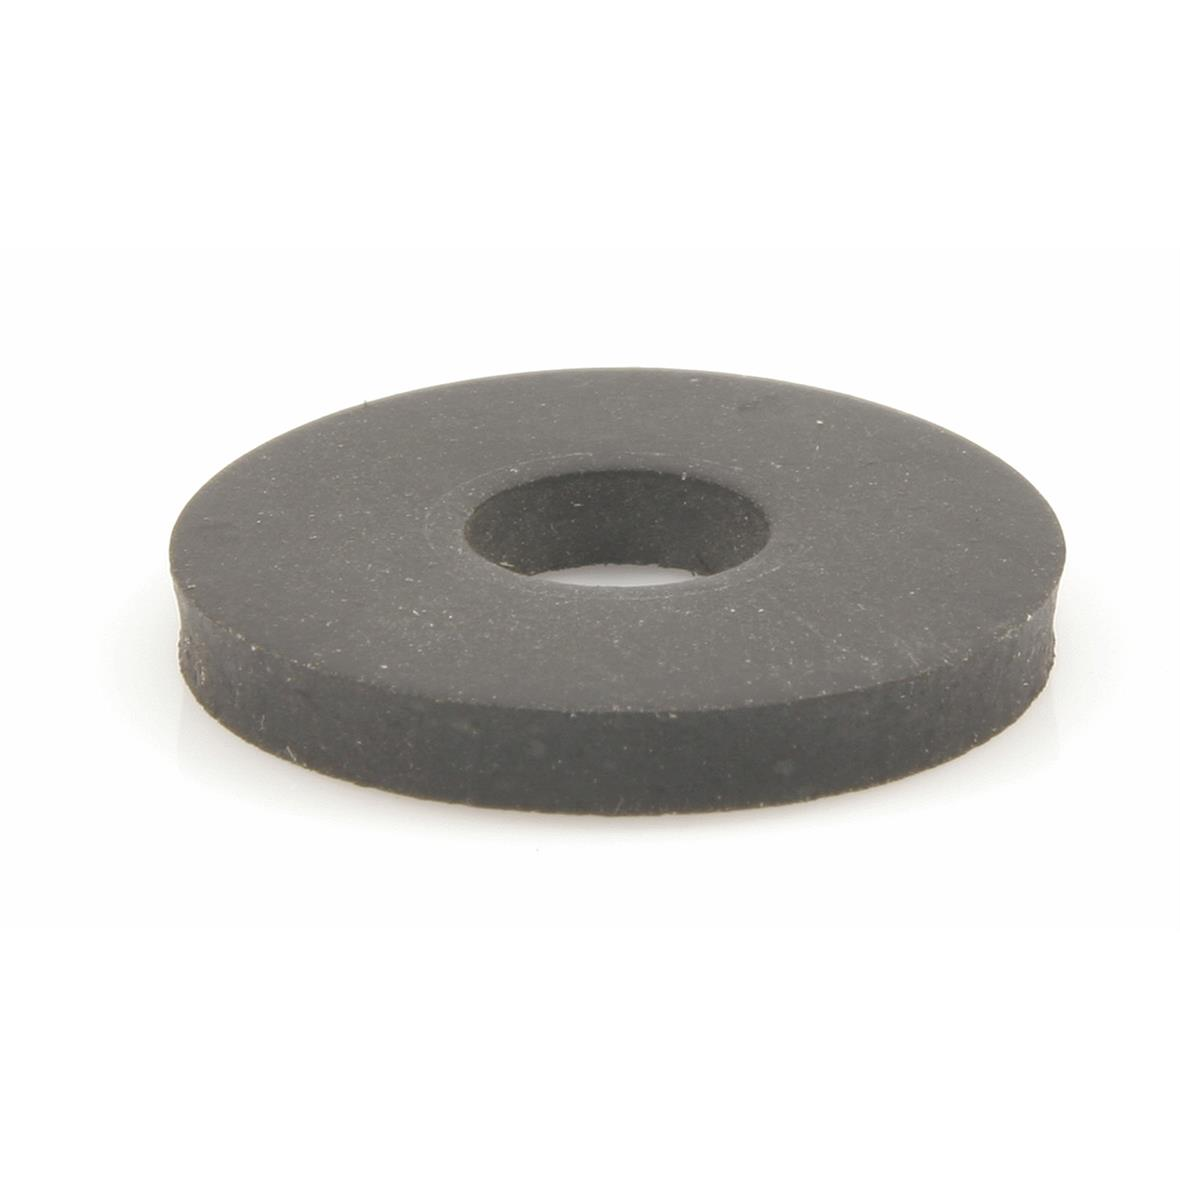 Product Image for 'Rubber Washer SIP seatTitle'